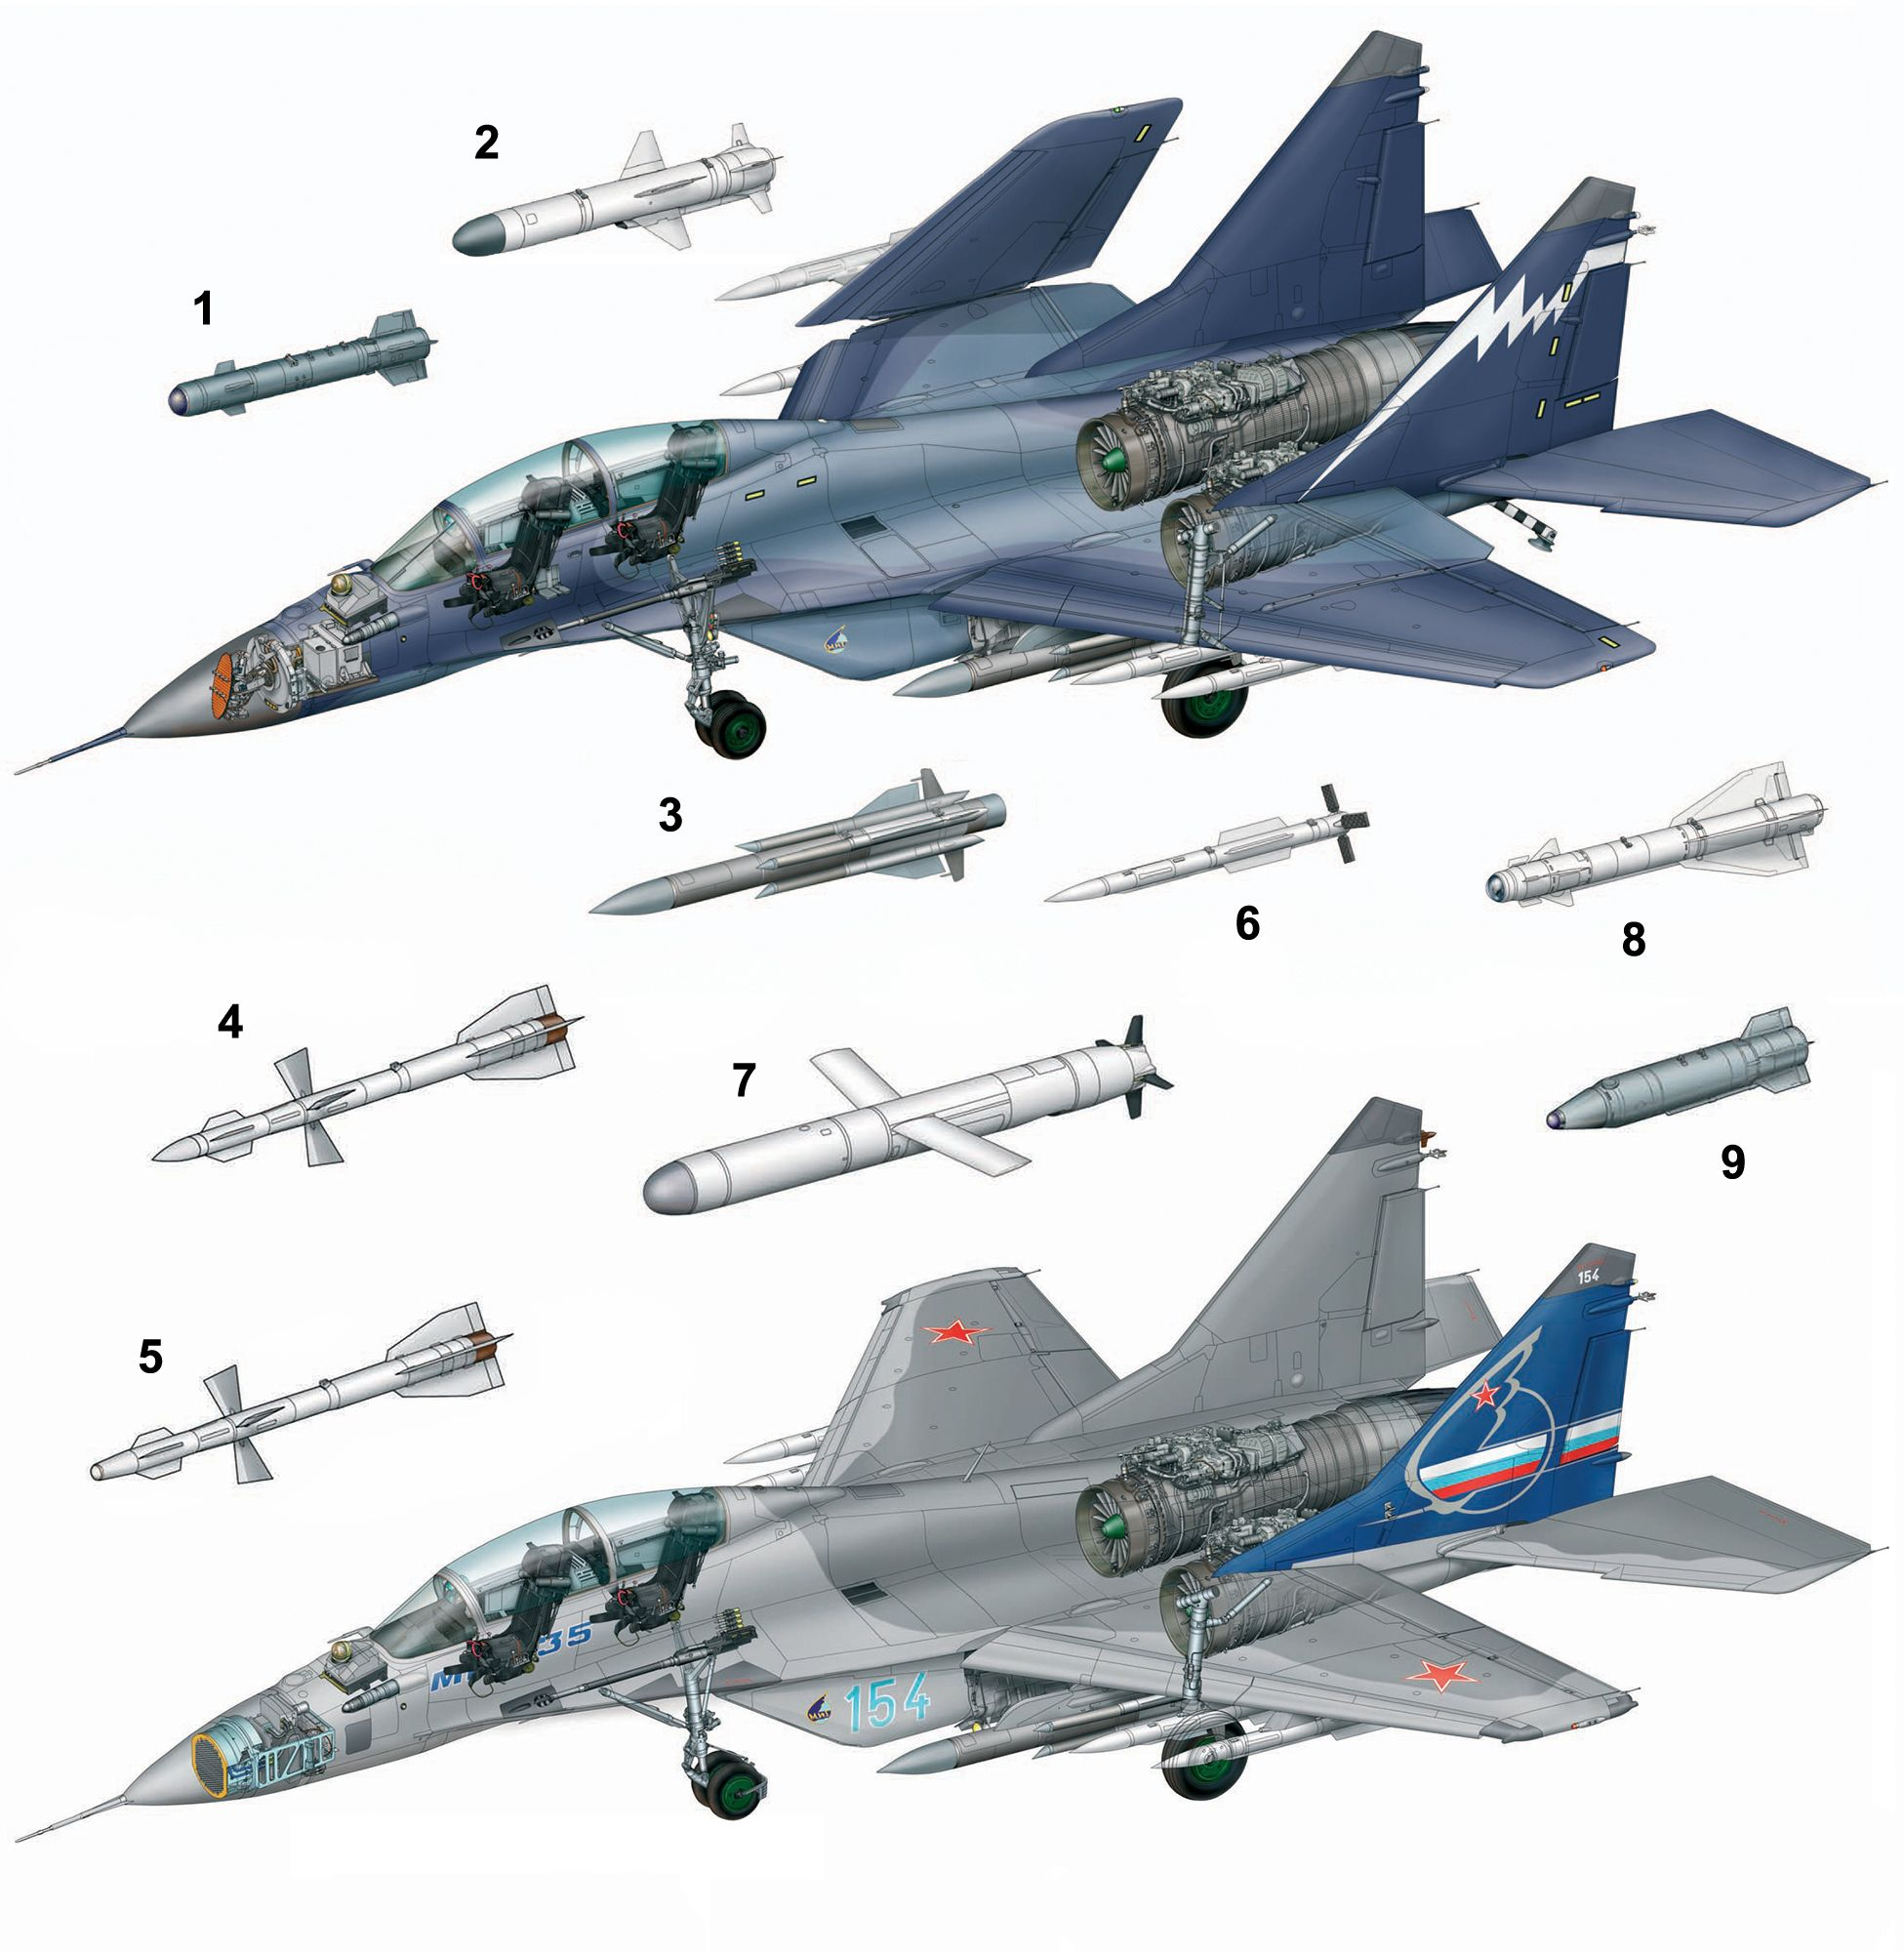 MiG-35   Russian fighter jets, Fighter aircraft, Russian military aircraft